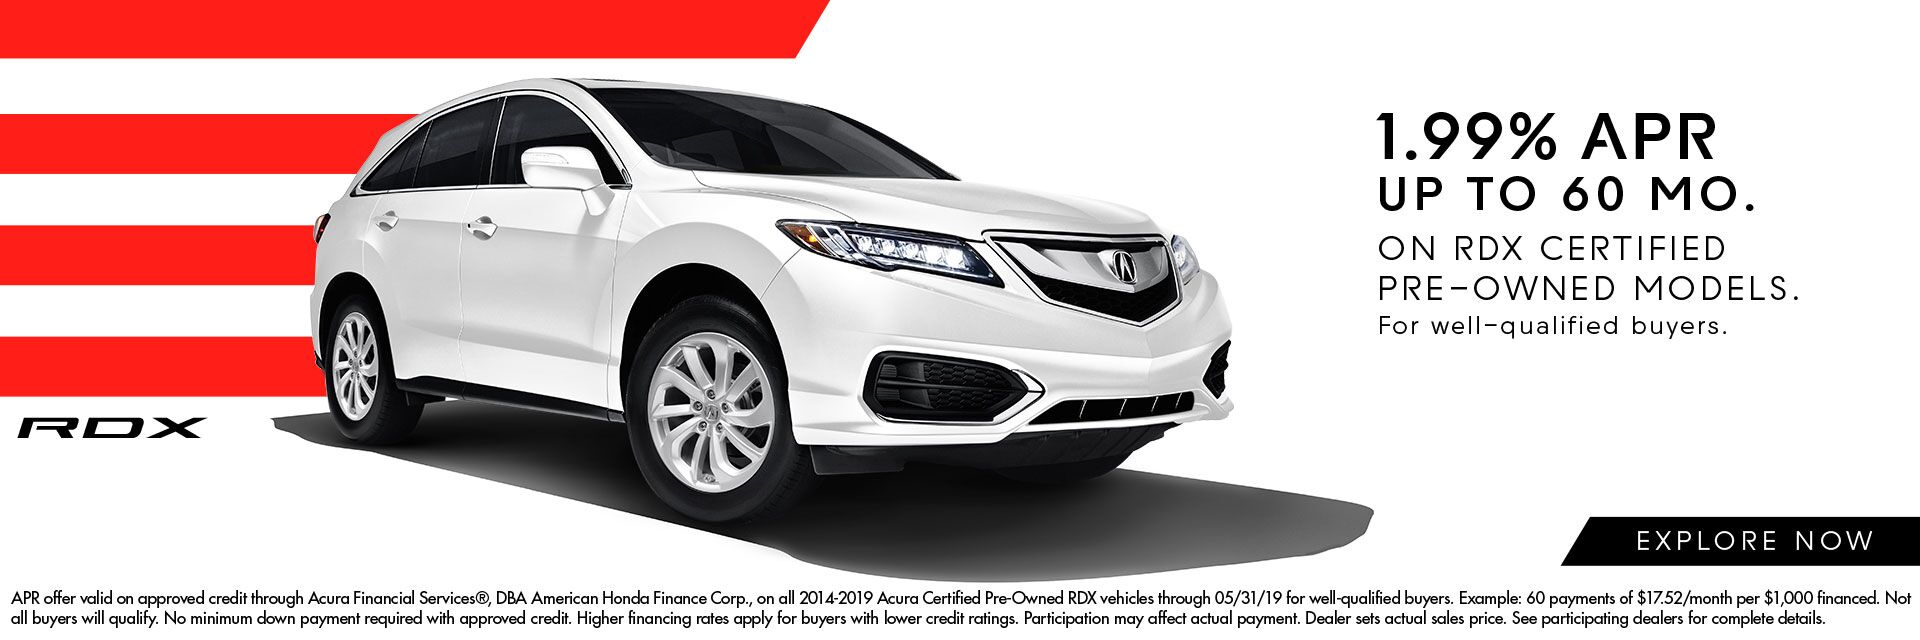 1.99% APR Incentives on Certified RDX at Montaño Acura